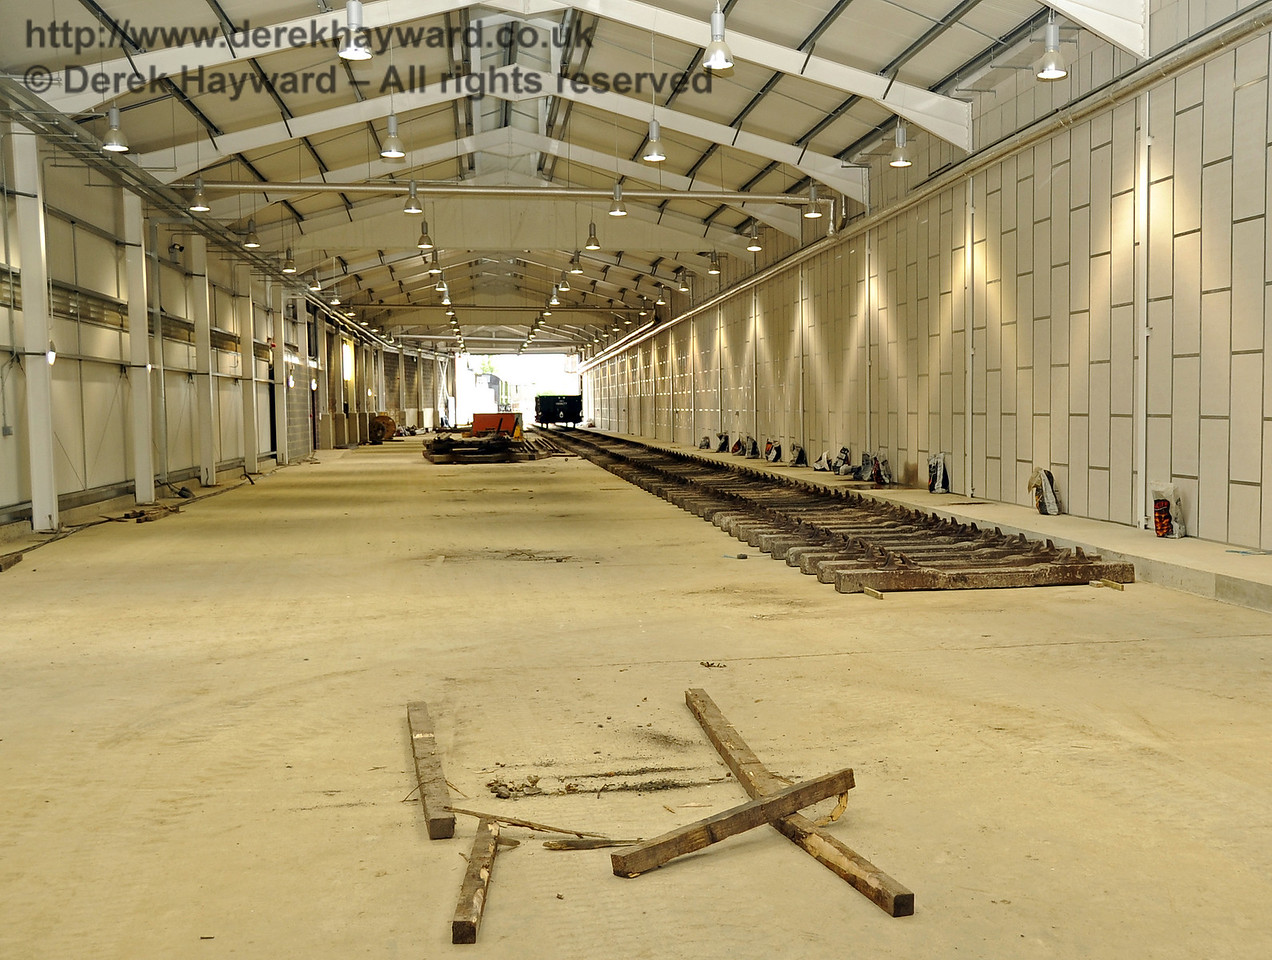 Looking south along the length of the Carriage Shed.  The track on the right will be A road.  24.07.2011  2353